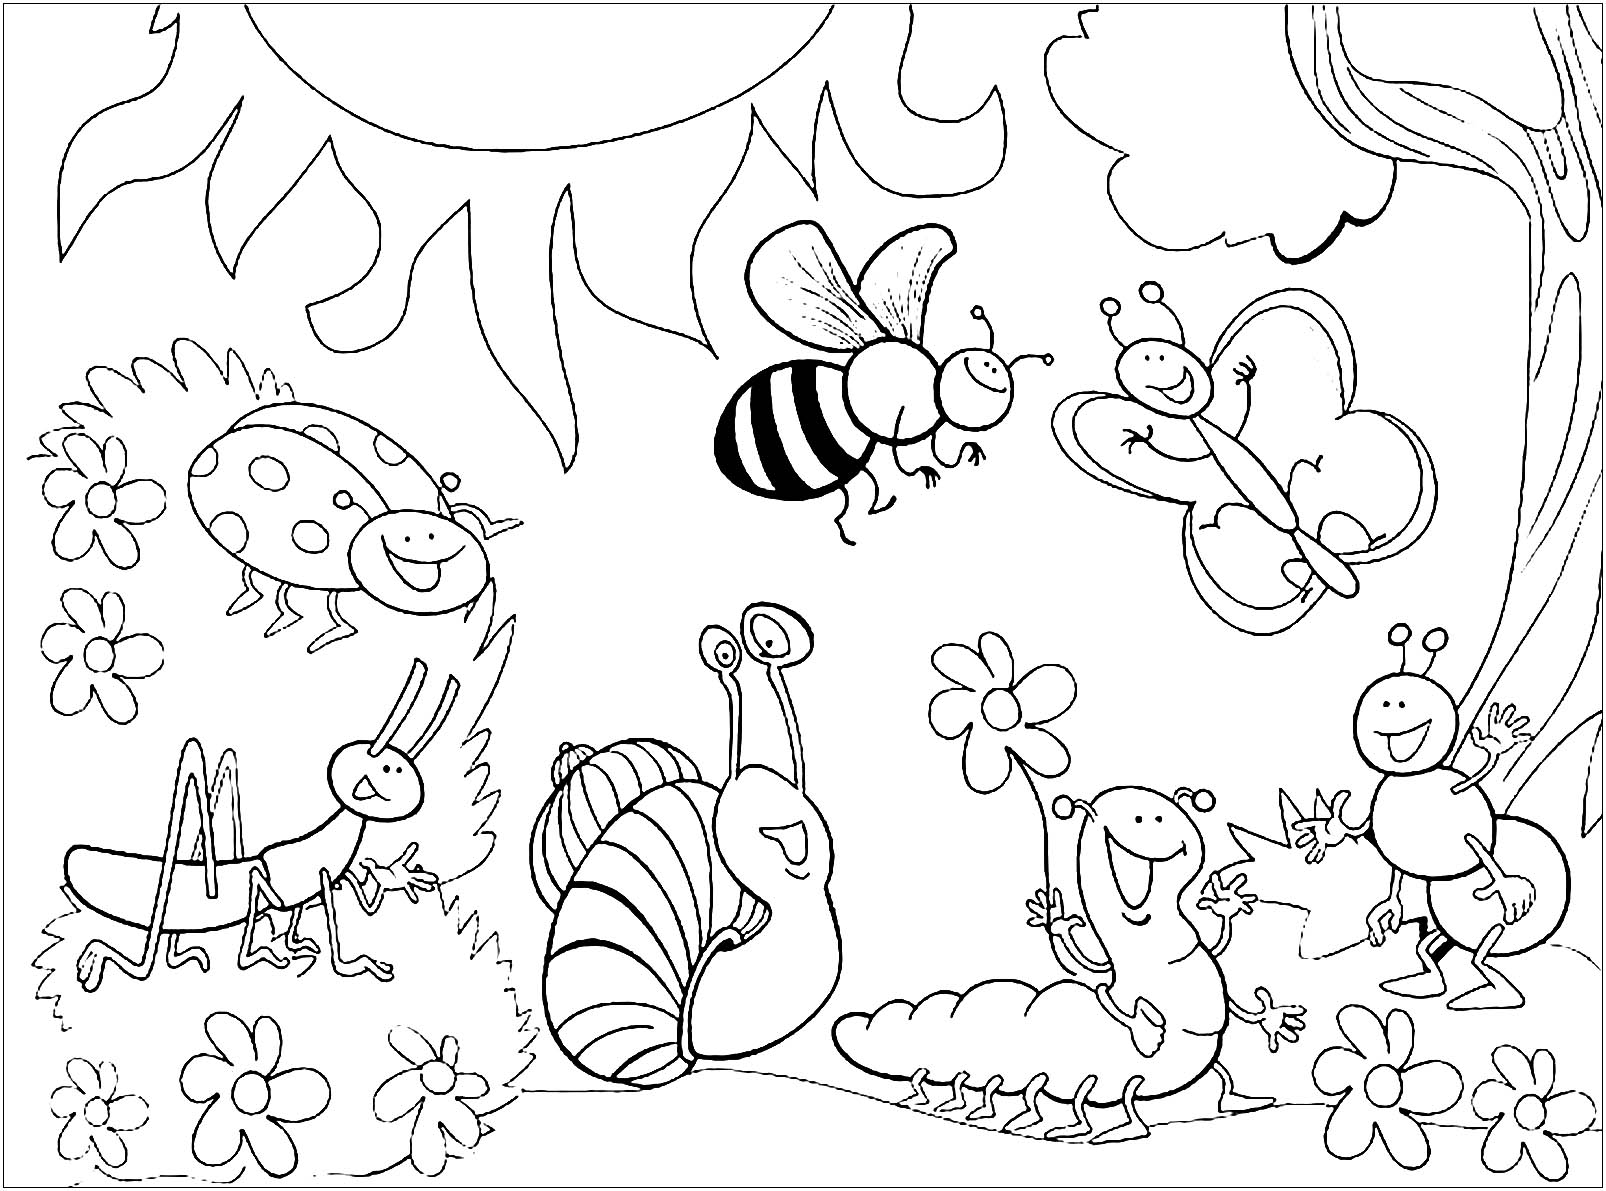 coloring pictures of insects insects for children insects kids coloring pages insects pictures coloring of